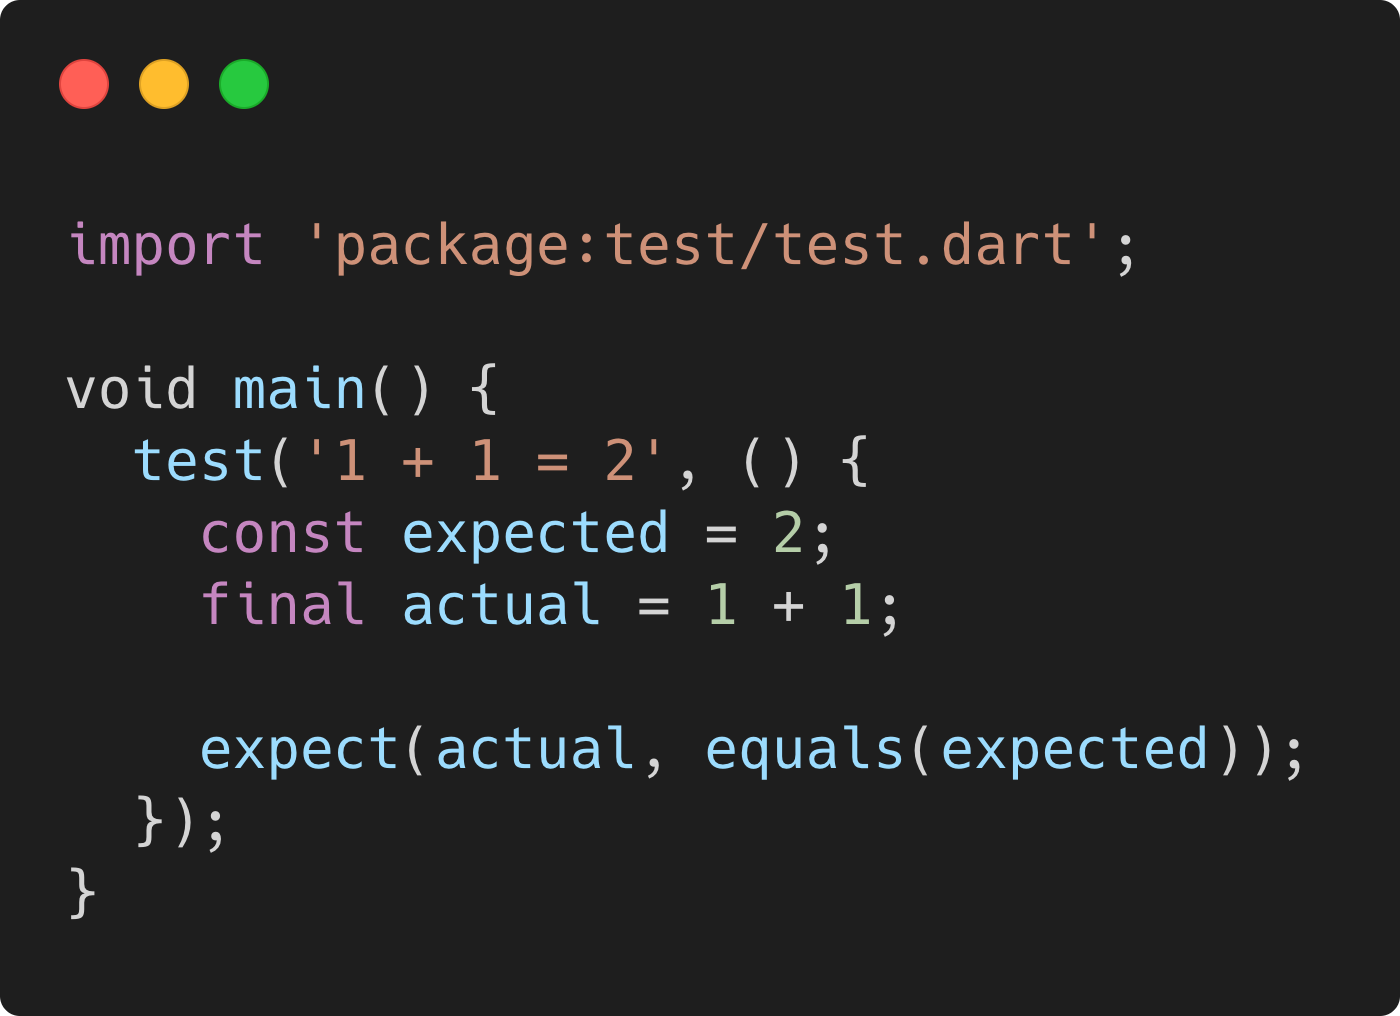 A simple test in Dart that validates implementation of 1+1 with expected answer 2